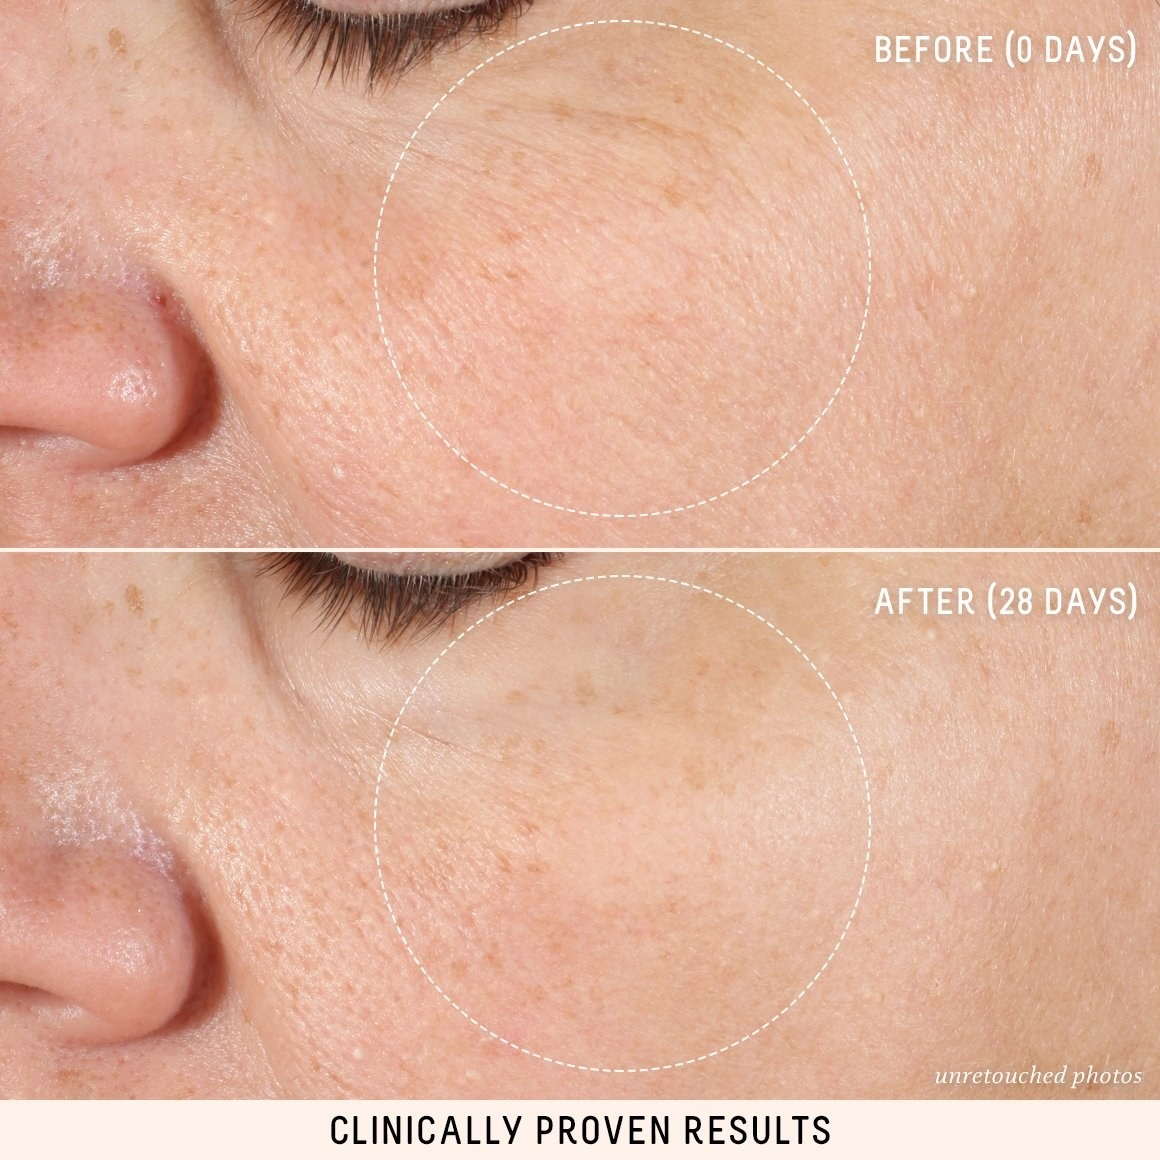 before and after, showing dry skin and fine lines before, then faded lines and hydrated skin after 28 days of use